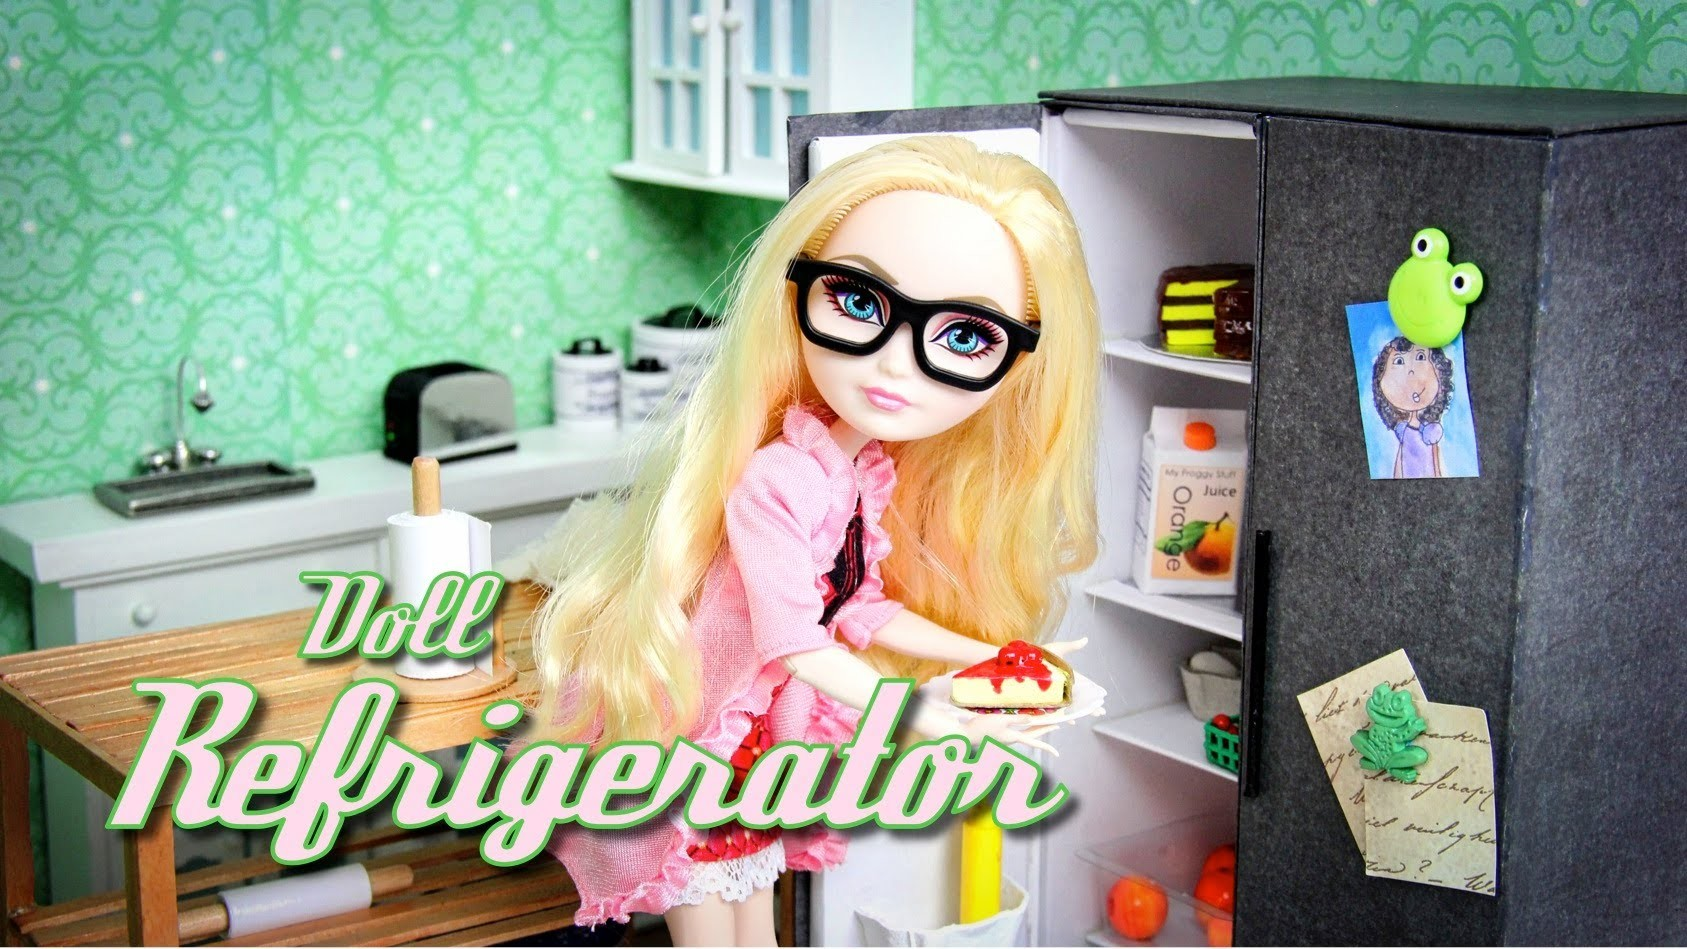 How to Make a Doll Refrigerator - Doll Crafts